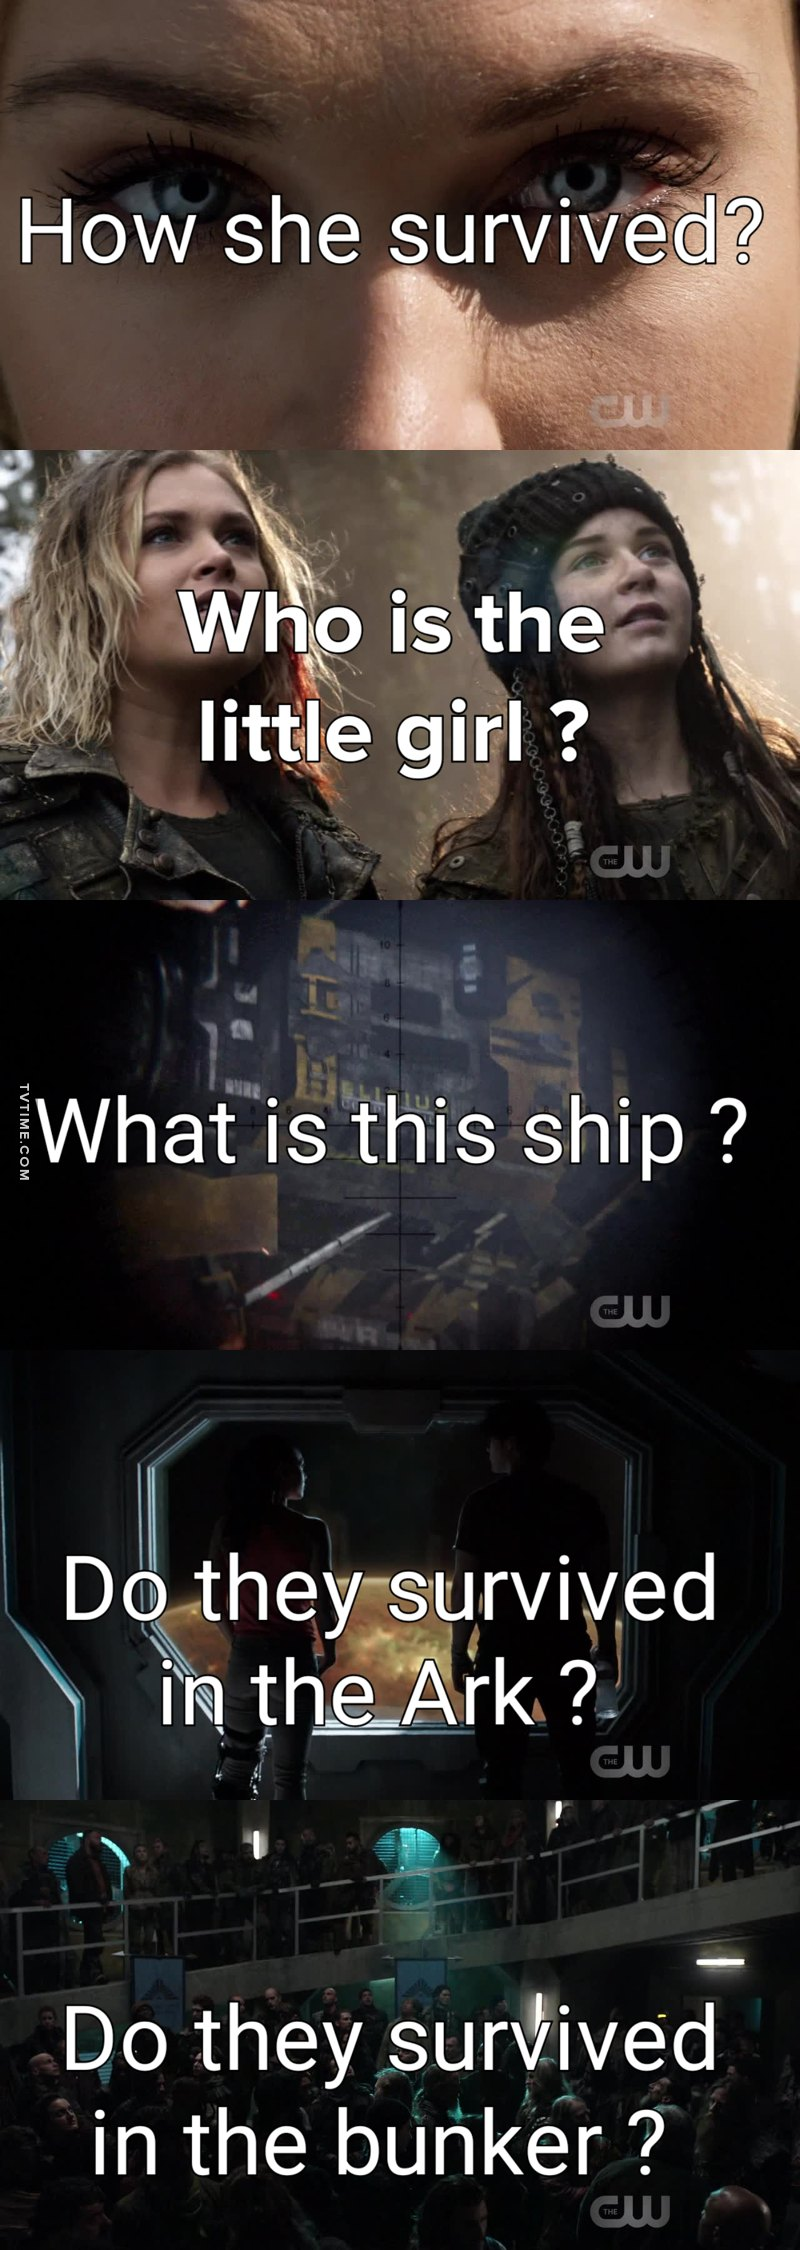 So I will try to answer to some of the many questions this Season finale let us with ! (Based own my own reflection and what I have seen so far in the internet with answer that are 90% sure !) Don't be afraid to comment your theories !  1) How Clarke Survived ? Nightblood.  2) Who is the little girl ? A natblida that they parents probably hide from the Conclave. She is called Madi and I guess she is between 10 and 15 years Old. No she is not Clarke's daughter, but they will have probably a mother-daughter relationship or at least a mentor-apprentice relationship  3) What is this ship ? It's from Eligius Mining Company, this is the company for which Becca created Nightblood. It's a mining company that use prisoner injected by Nightblood as miner. So we could assume that they survived Praimfaya !  4)Do the 7 survived on the Ark ? Probably, they have probably problem to go back to Earth. They will probably take whole Season 5 to get back to Earth.  5)Do wonkru survived in the Bunker ? Probably too, they have to get rid from all the ruin of the Polis Tower to get out, so it's explain why they are still not out.